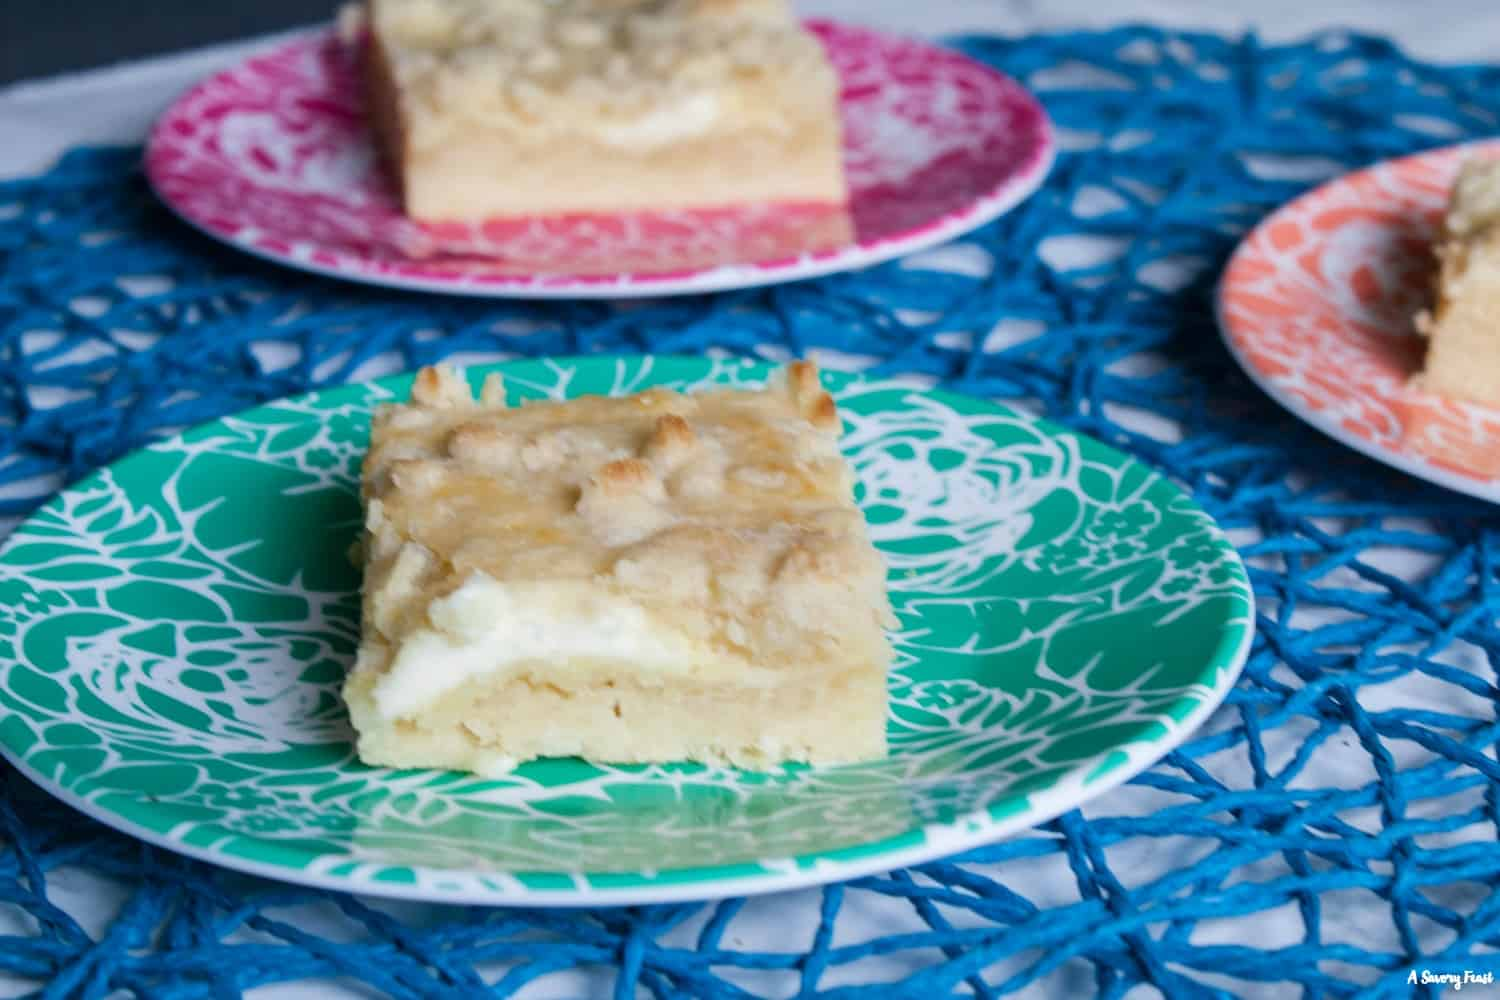 Lemon Cheesecake Crumble Bars dessert